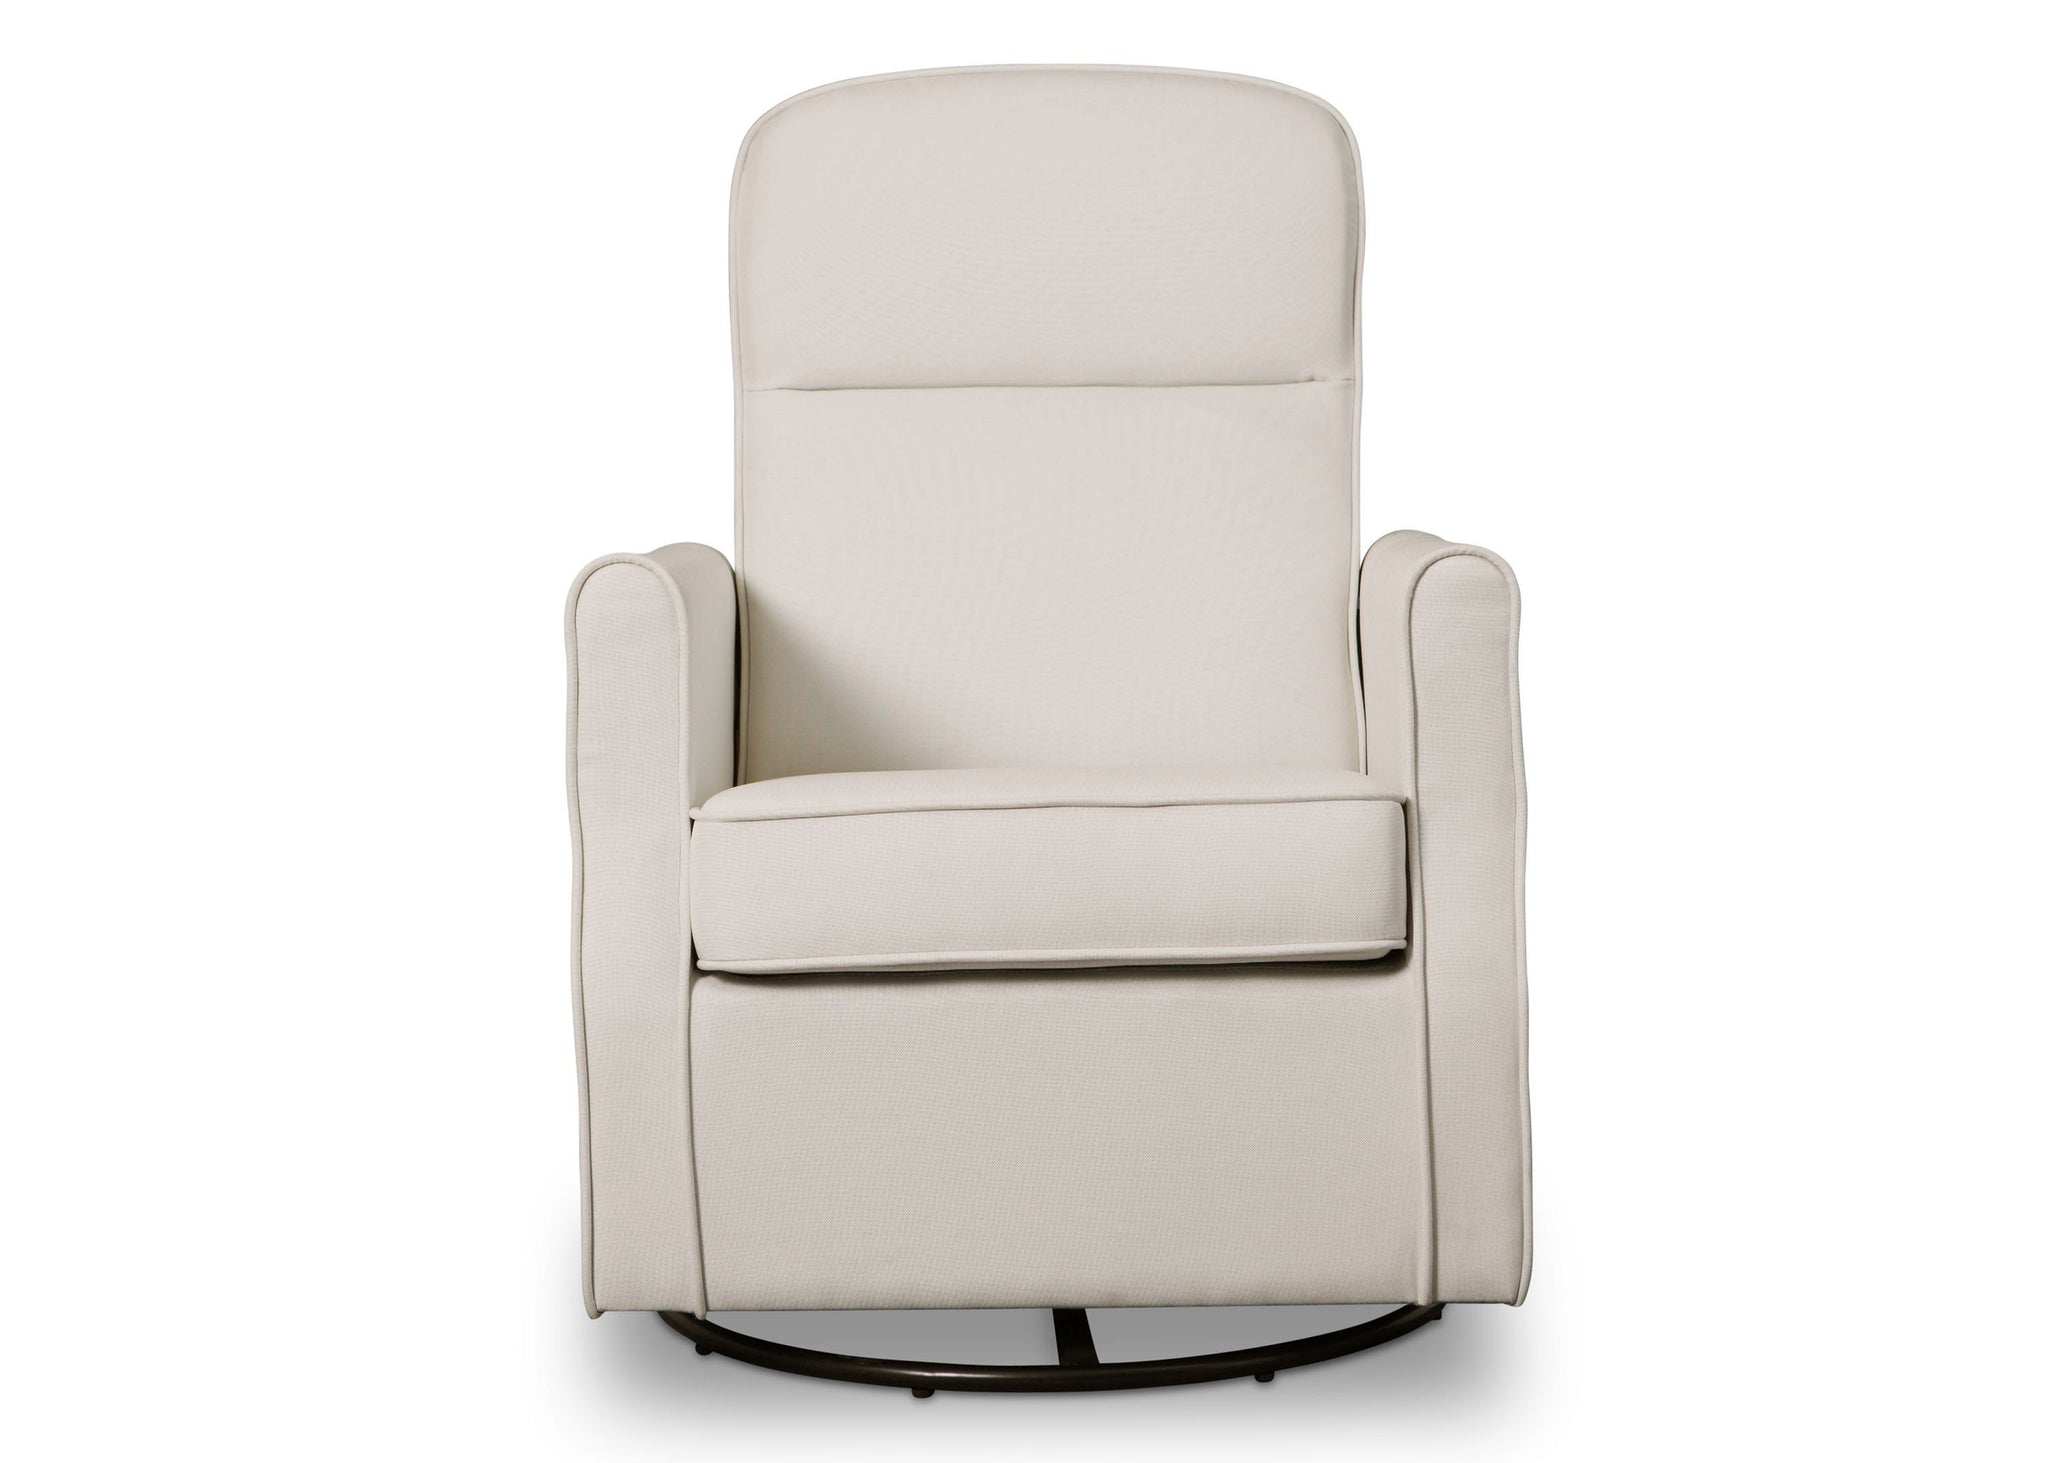 Delta Children Cream (743) Blair Slim Nursery Glider Swivel Rocker Chair, front view, b2b